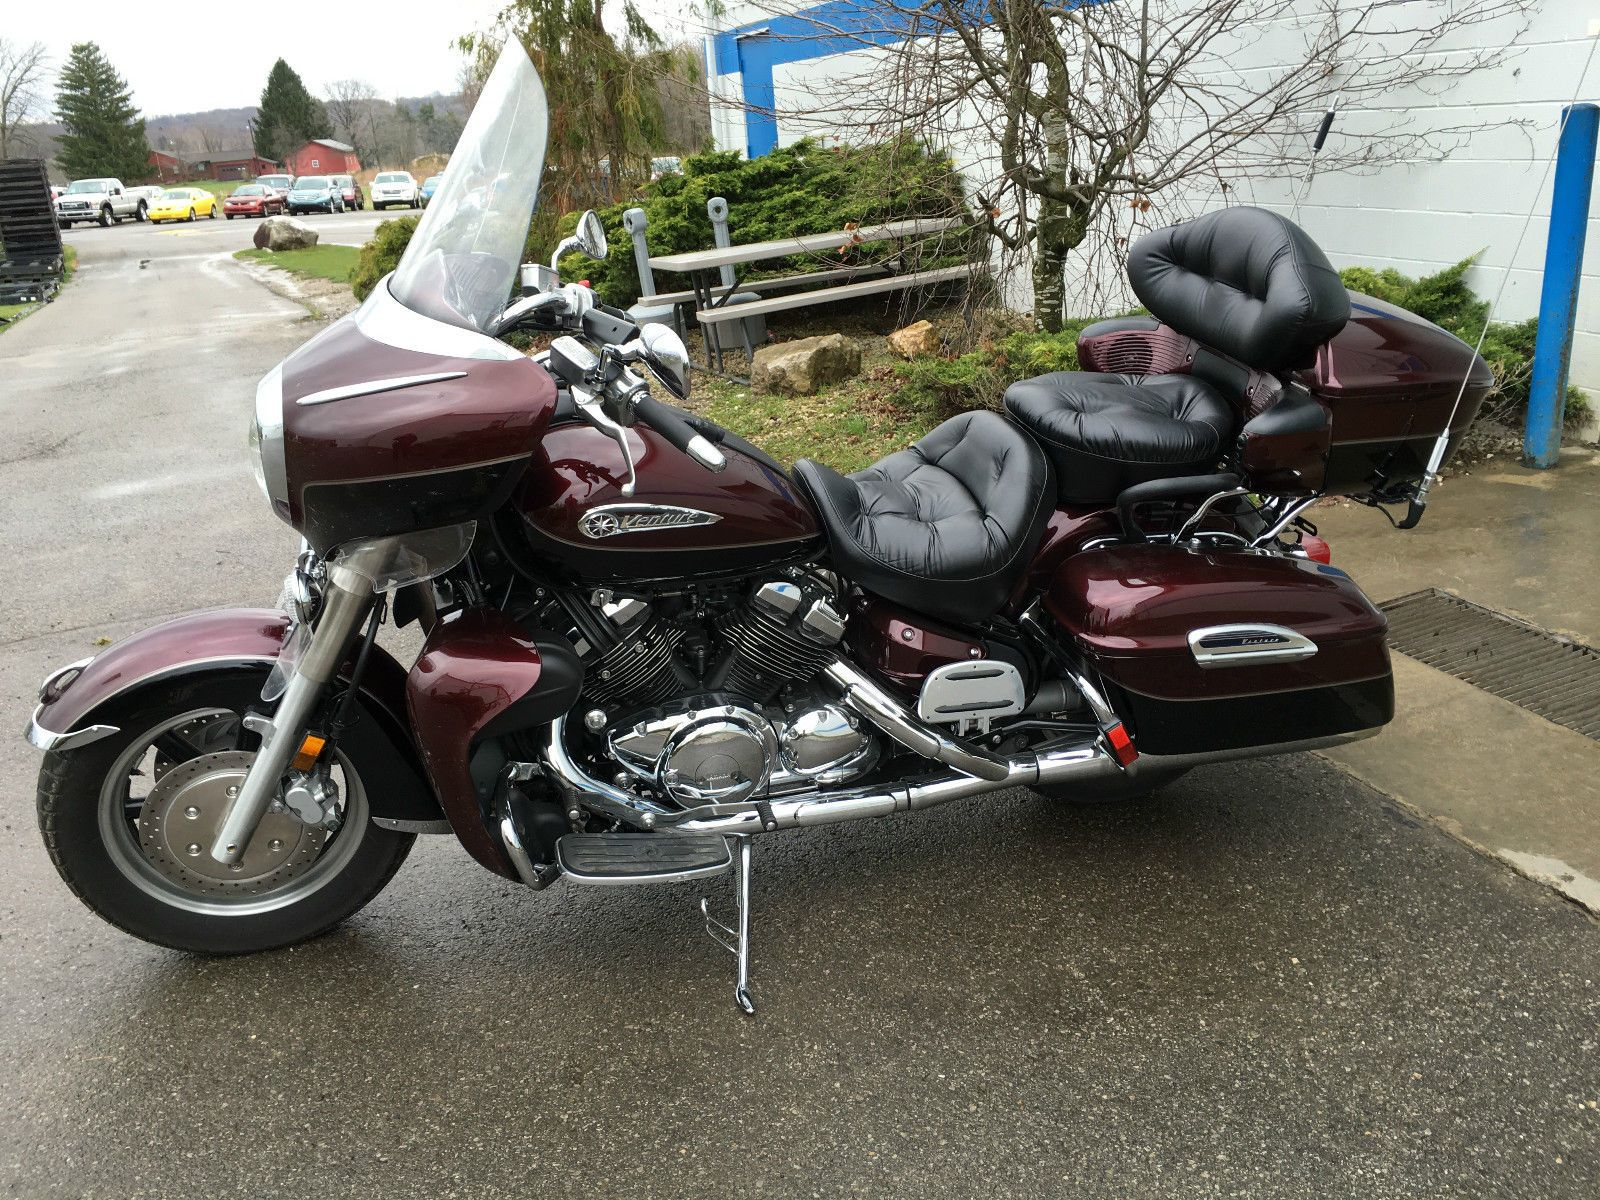 Pin On Yamaha Motorcycles For Sale